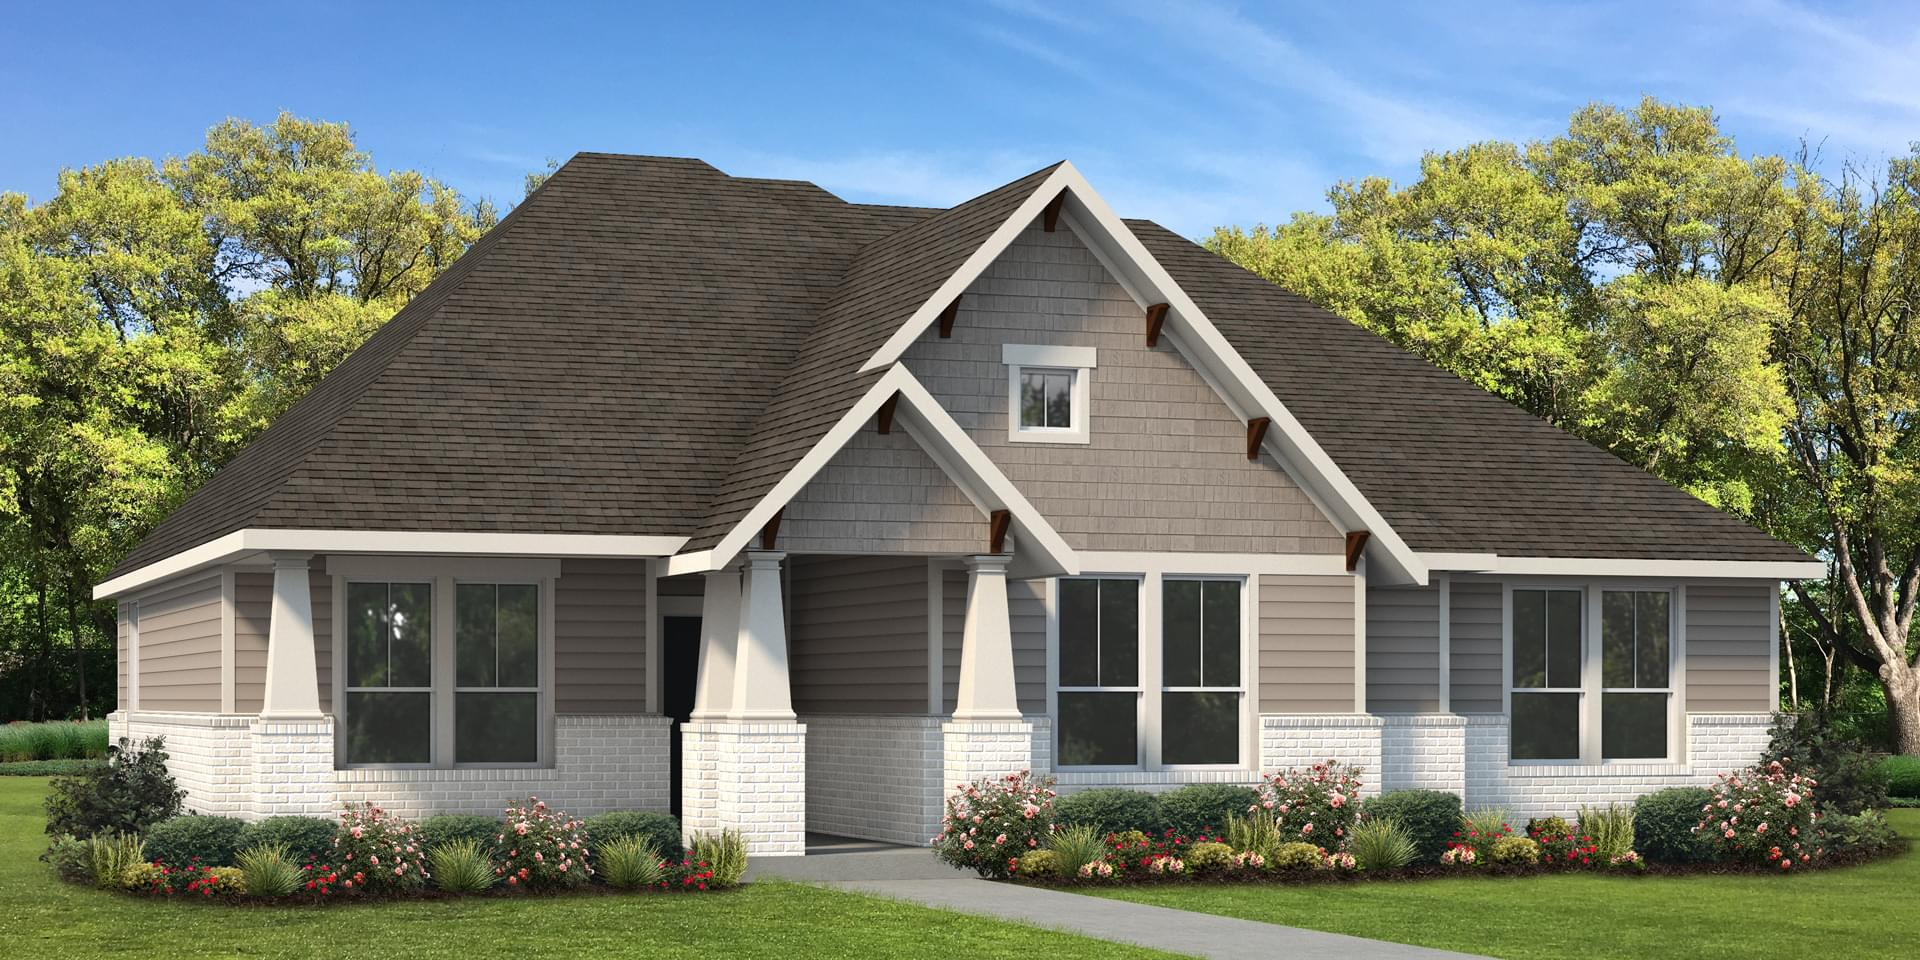 The Travis Custom Home Plan from Tilson Homes